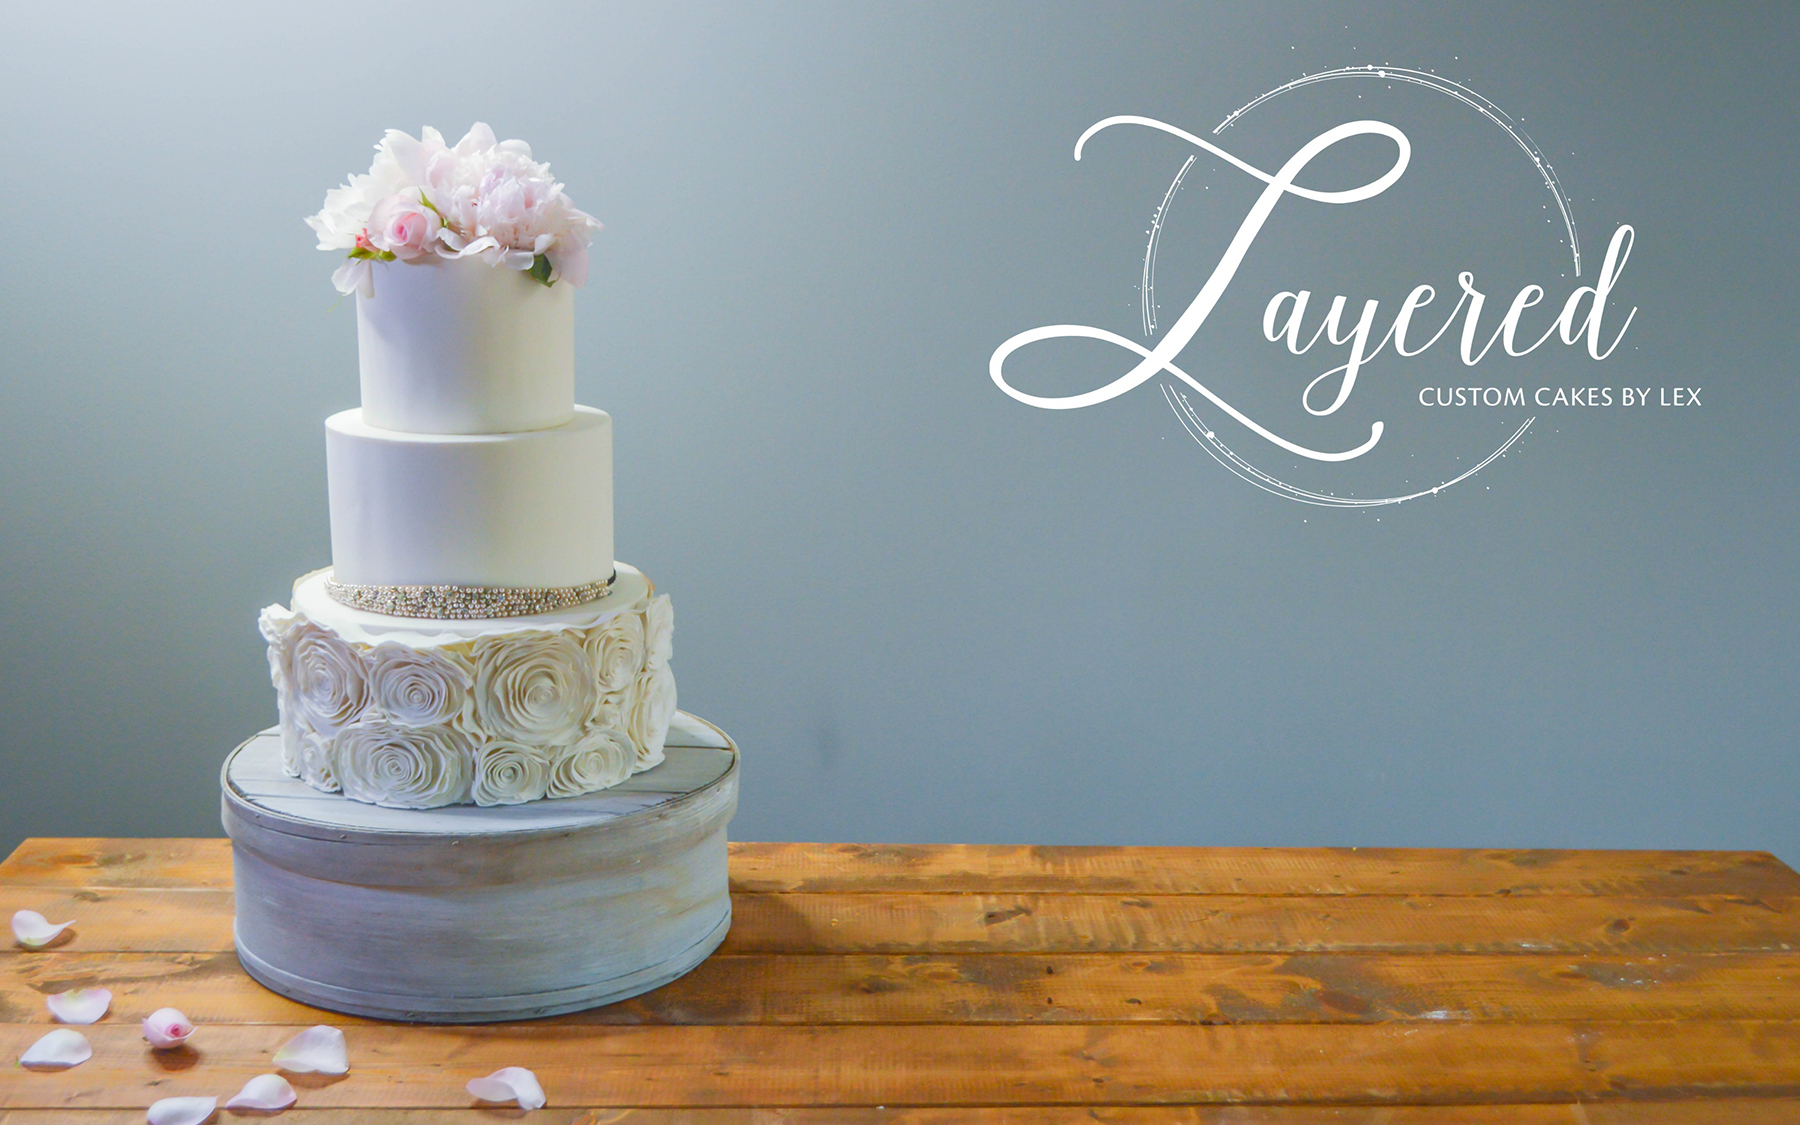 LAYERED CUSTOM CAKES BY LEX  Our custom cakes are made with ingredients from local farms and markets. You will be tasting a superior product and also contributing to the sustainability of locally owned businesses in the Asheville area.    More Information      Leave a Review